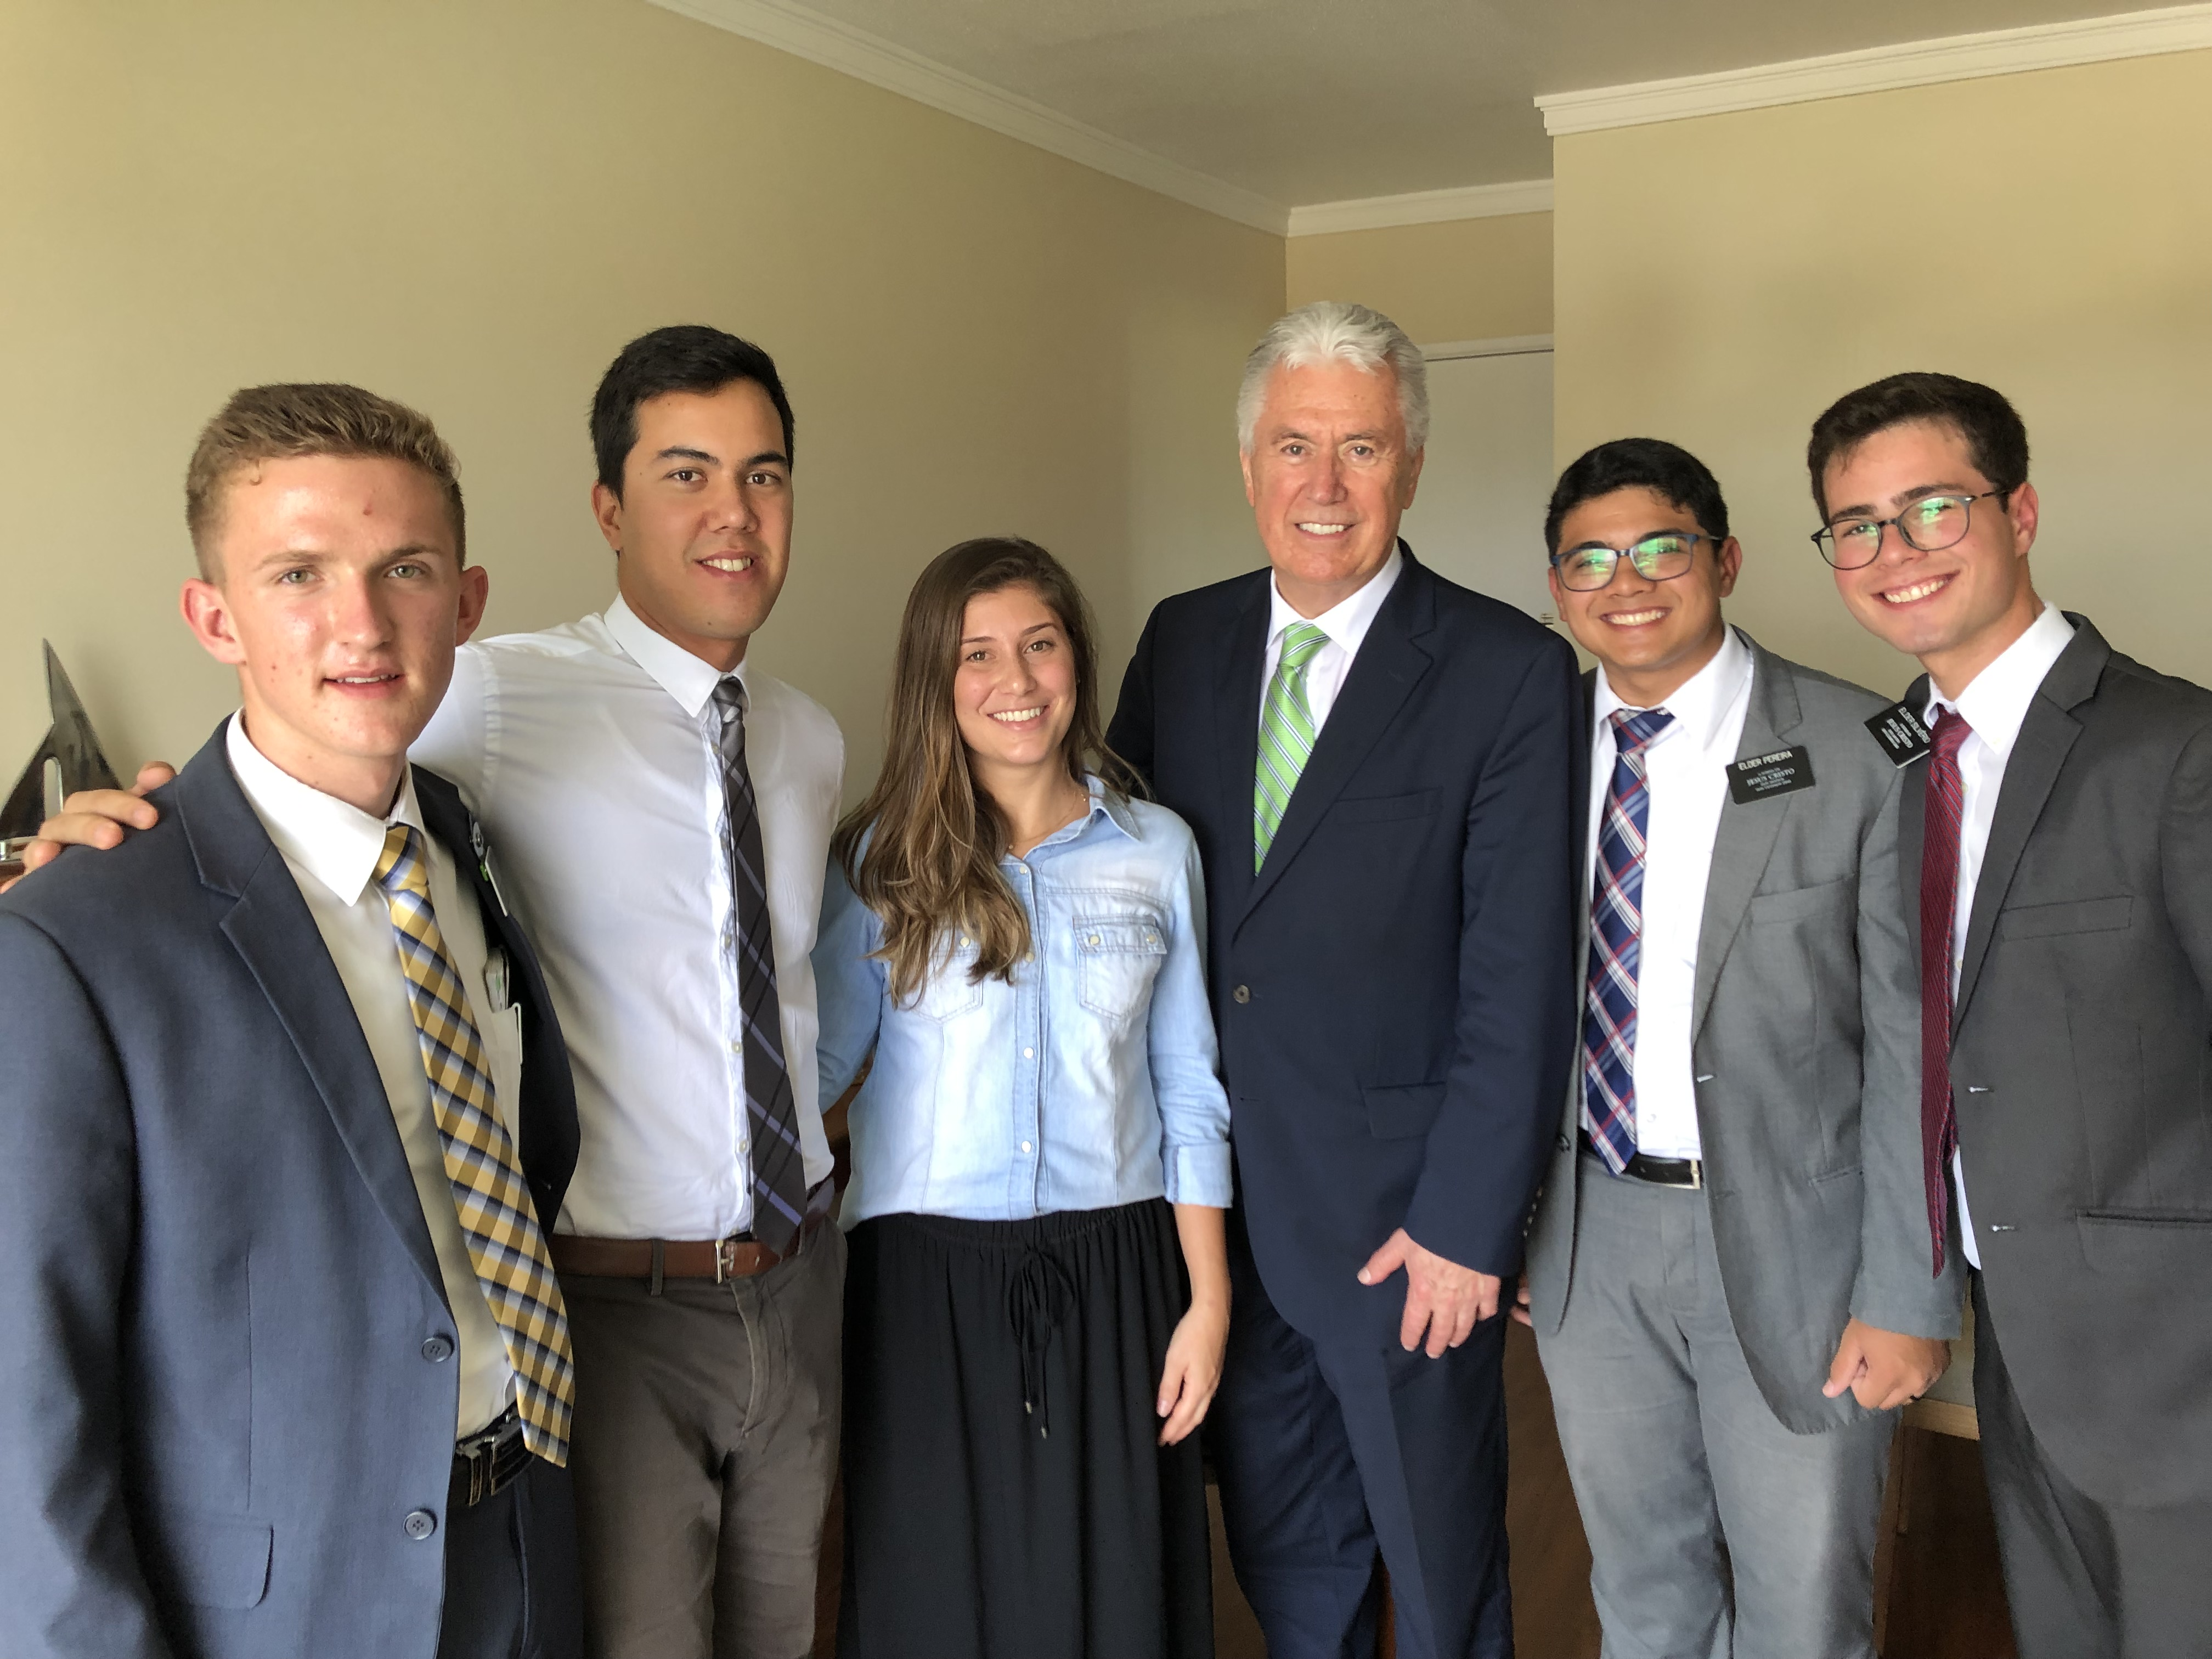 Elder Dieter F. Uchtdorf of the Quorum of the Twelve Apostles, pose for a photo with Zenon and Natalia Spaveevskas in their apartment after lesson with Elders Brennan Lance Stimpson, Gabriel Luiz Rodriguez Silvério and Leonário Lima Pereira of the Brazil São Paulo West Mission in February 2019.